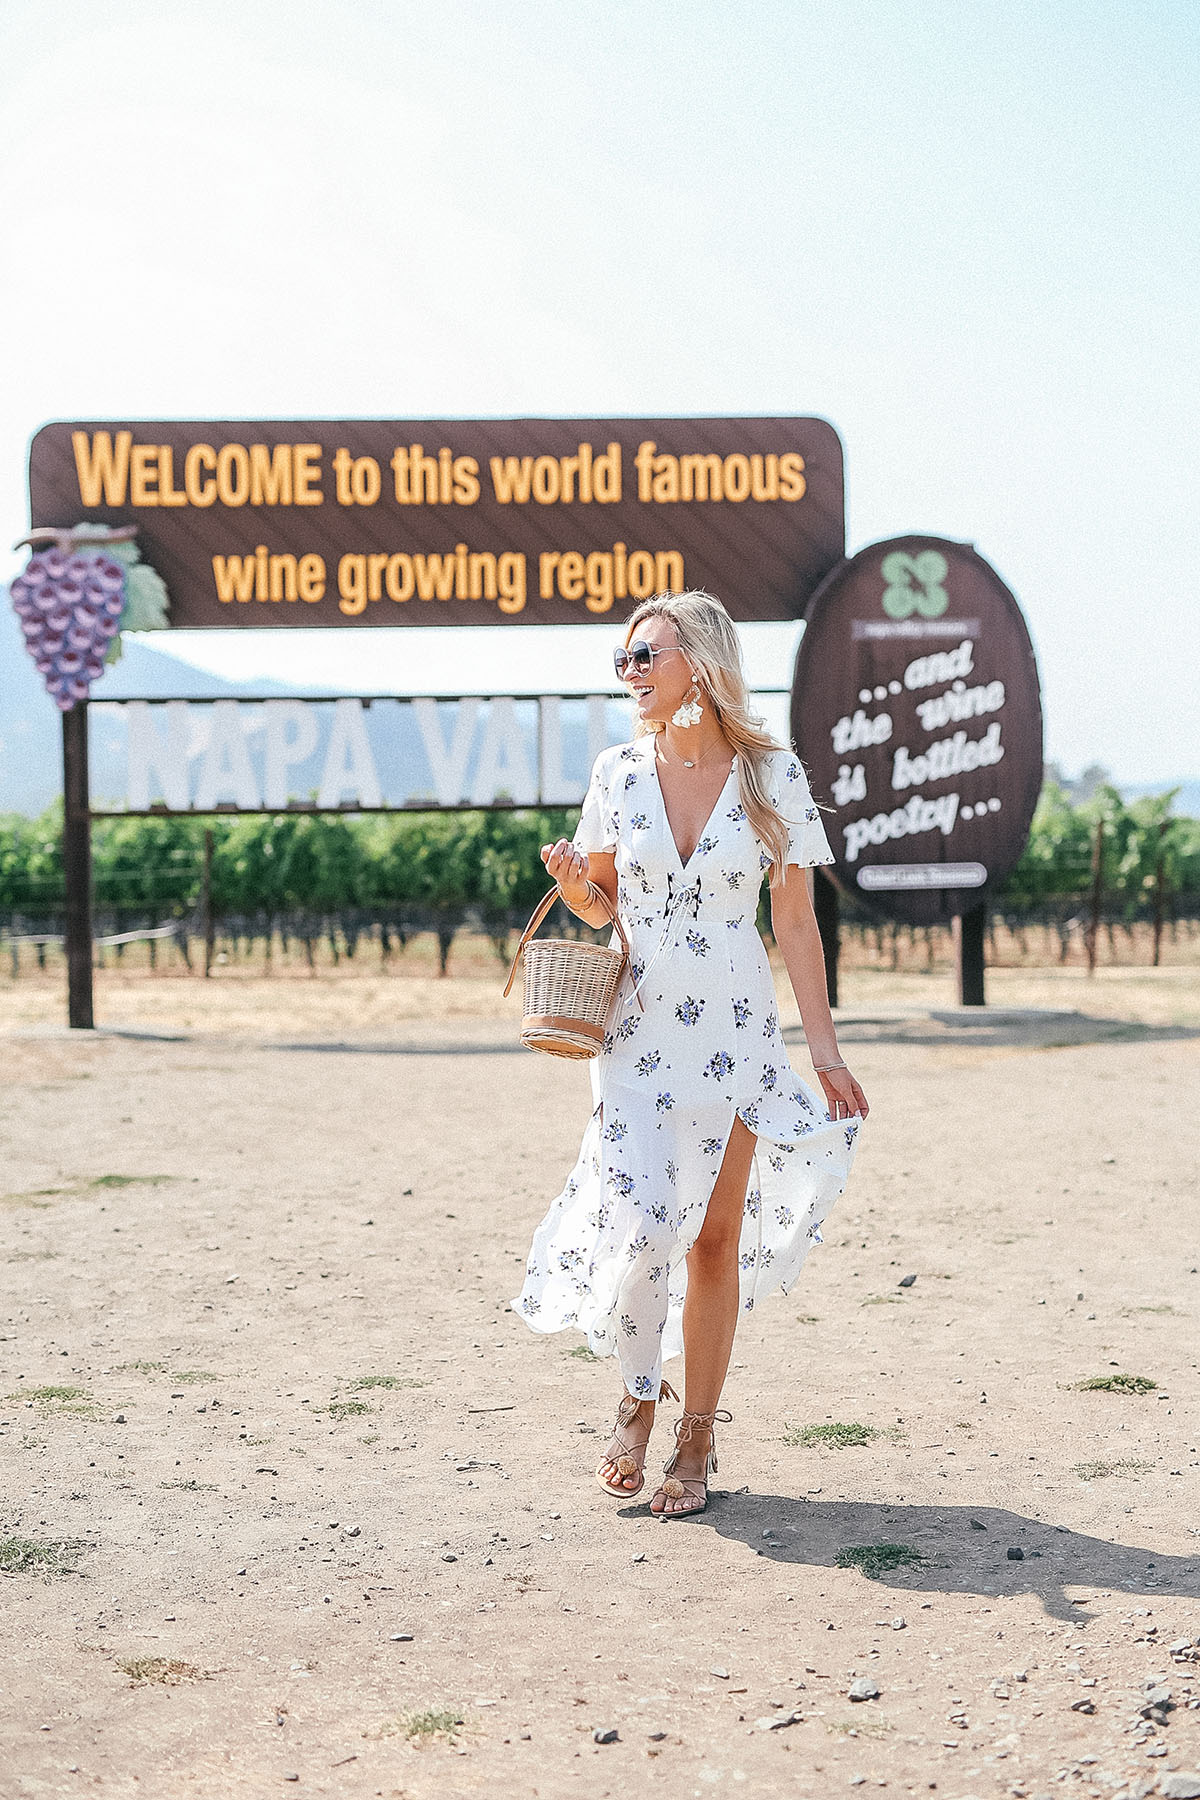 Napa Travel Guide   Hotel Yountville   First Timer's Guide to Yountville & Napa